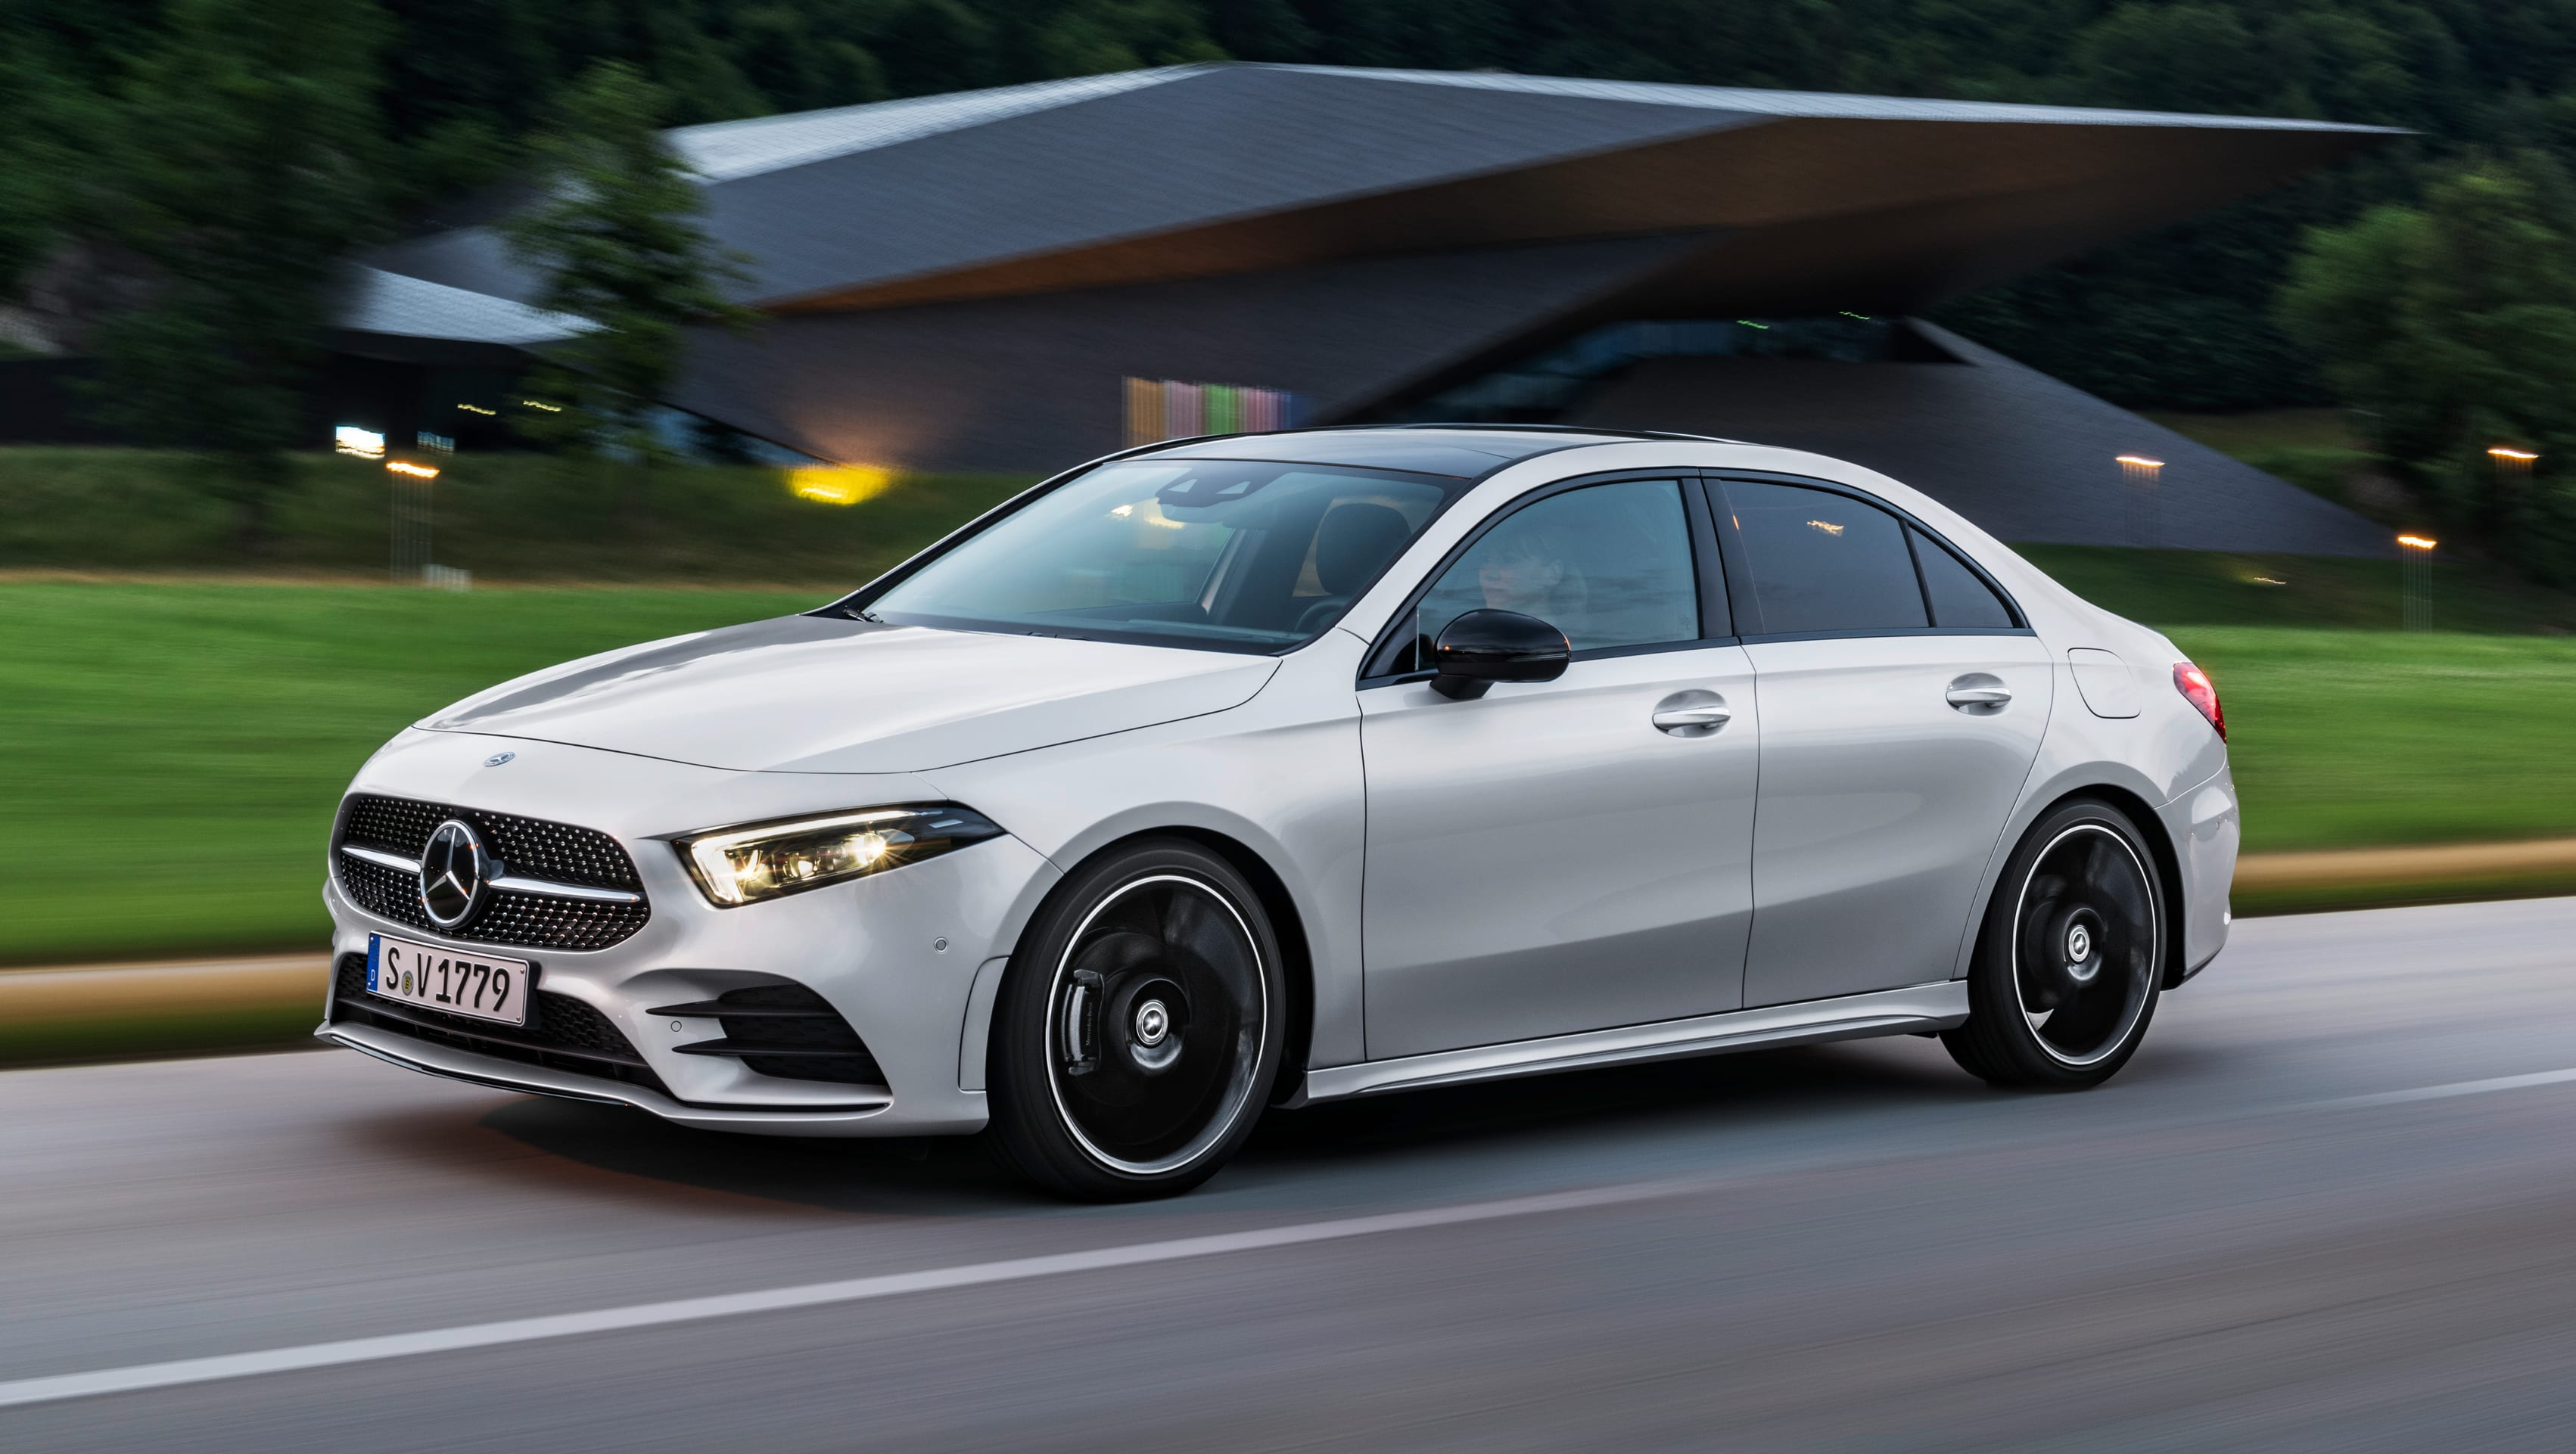 Mercedes Benz A Class Sedan 2019 Pricing And Spec Revealed Car News Carsguide